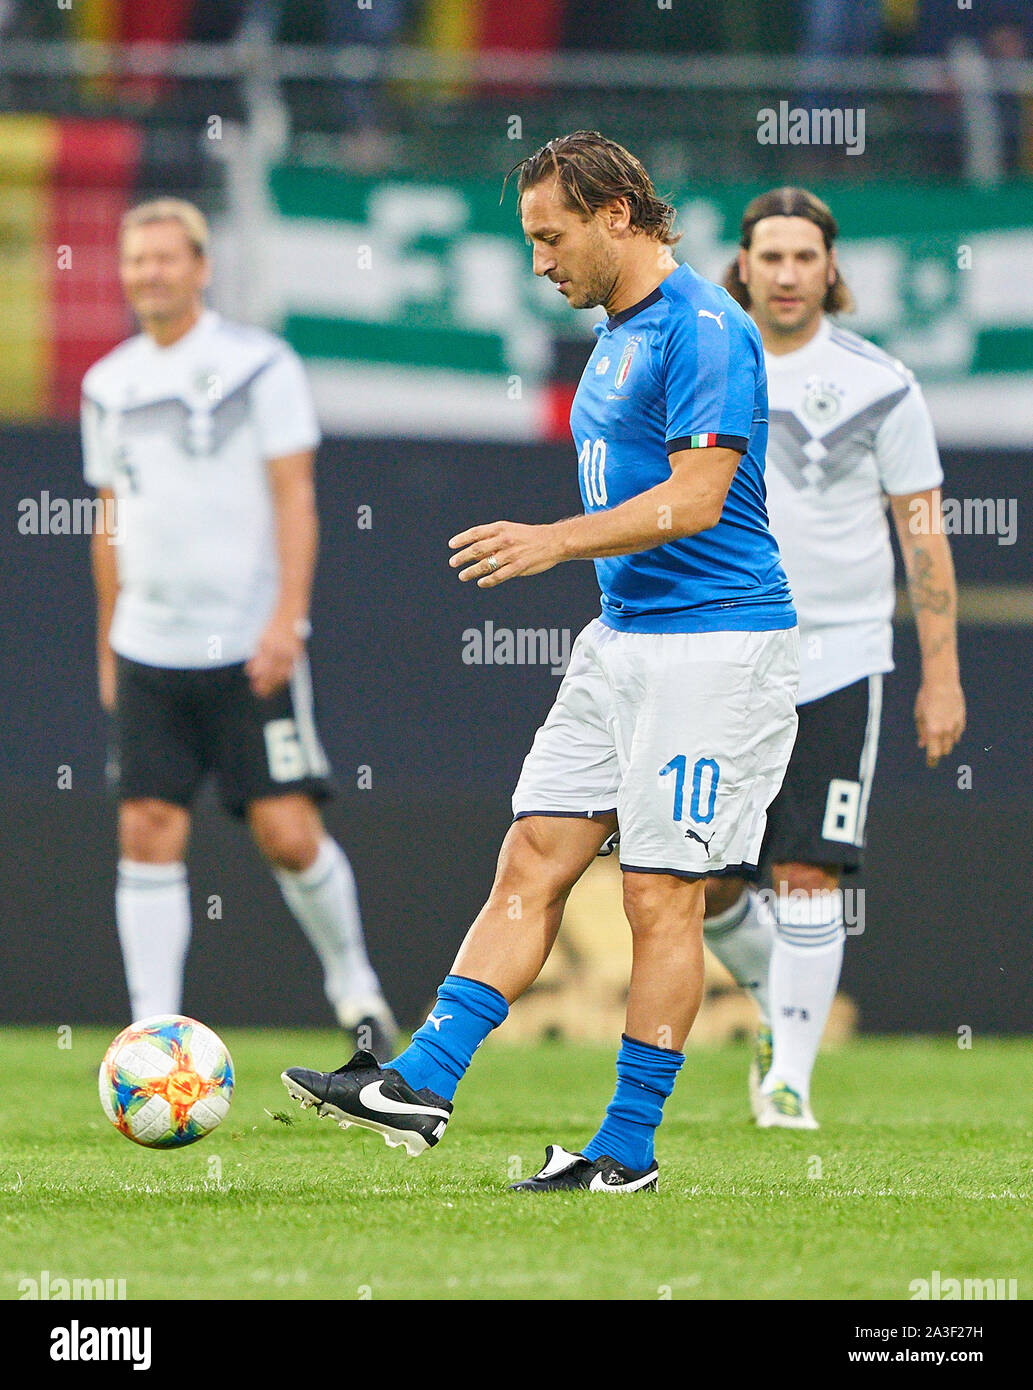 Fürth, Germany, October 07, 2019 Francesco TOTTI, ITA All Stars Nr. 10 drives, controls the ball, action, full-size, Single action, einzelaktion, with ball, full body, whole figure, cutout, single shots, ball treatment, pick-up, header, cut out, Ganzkoerperaufnahme, kick-off GERMANY ALL-STARS - ITALY AZZURRI   ALL STARS 3-3, German Soccer League , Fürth, Germany,  October 07, 2019  Season 2019/2020 © Peter Schatz / Alamy Live News Stock Photo